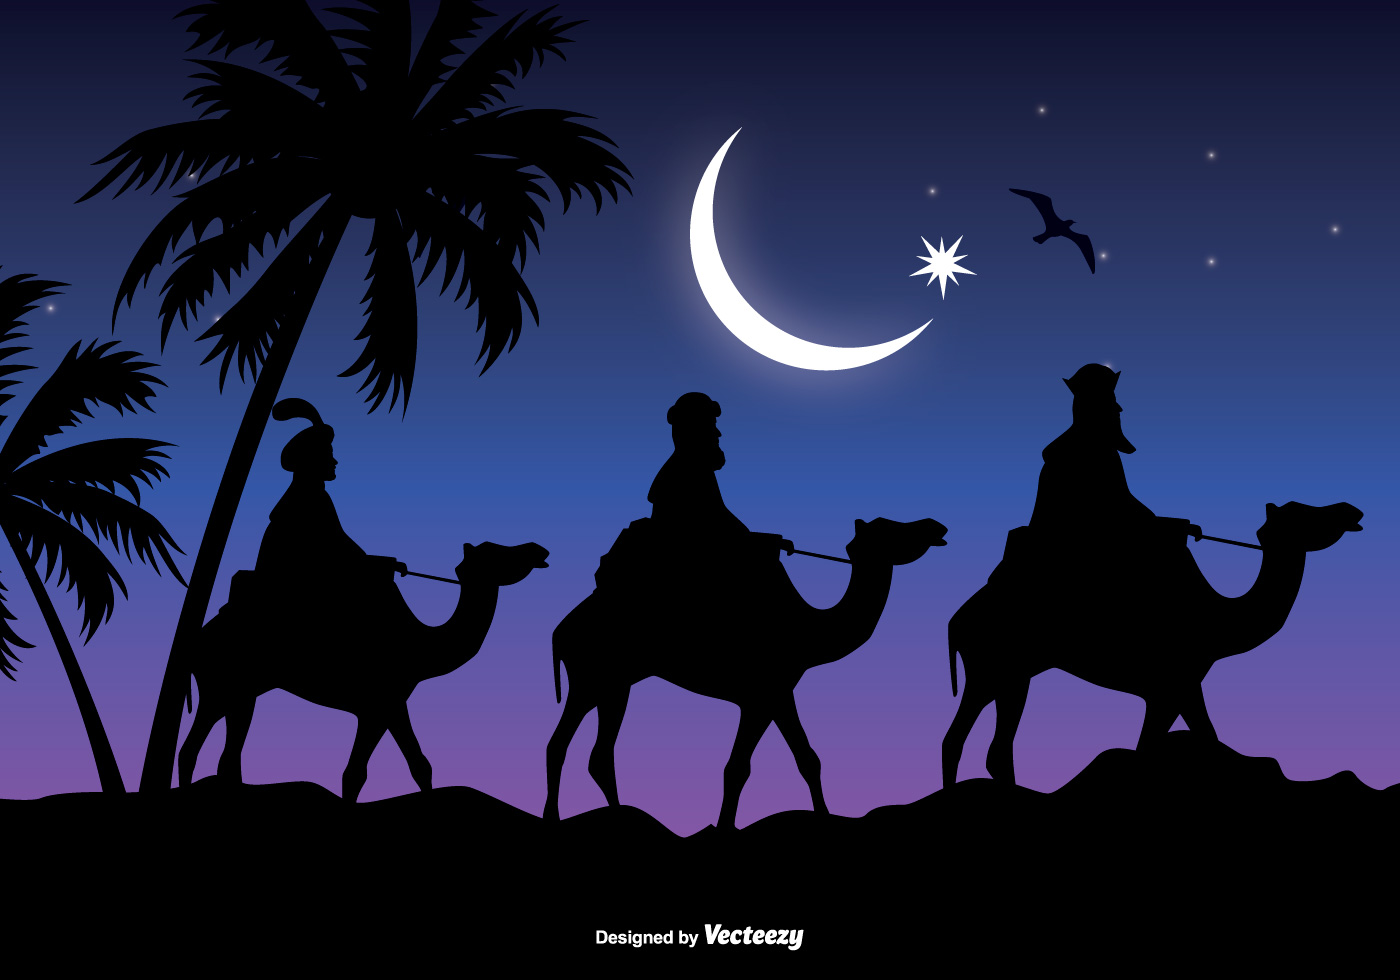 3 Wise Men Gifts For Christmas: Three Wise Men Scene Vector